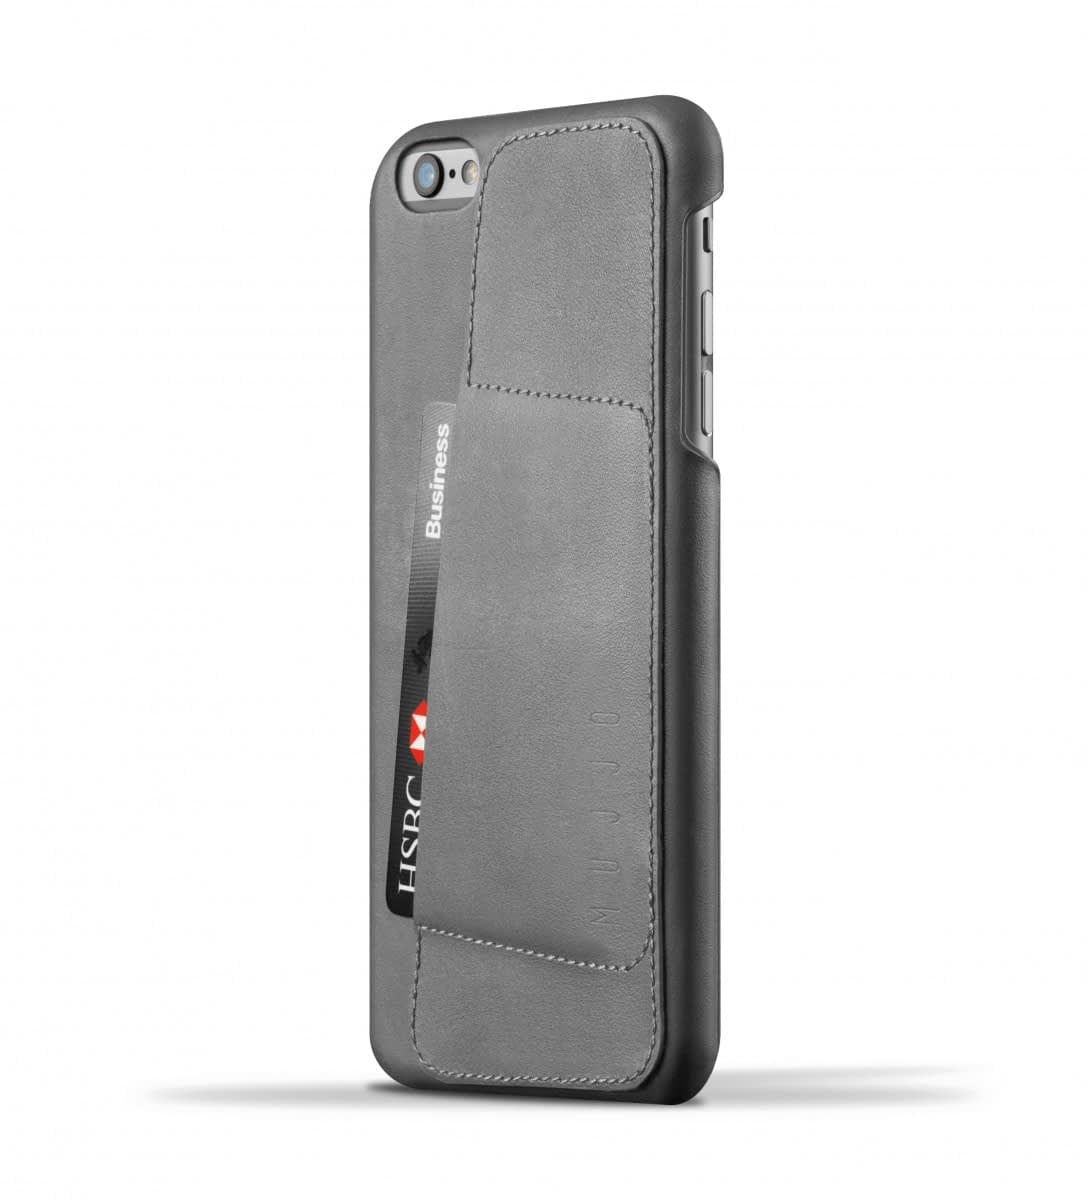 leather wallet case 80 for iphone 6s plus gray 1088x1200